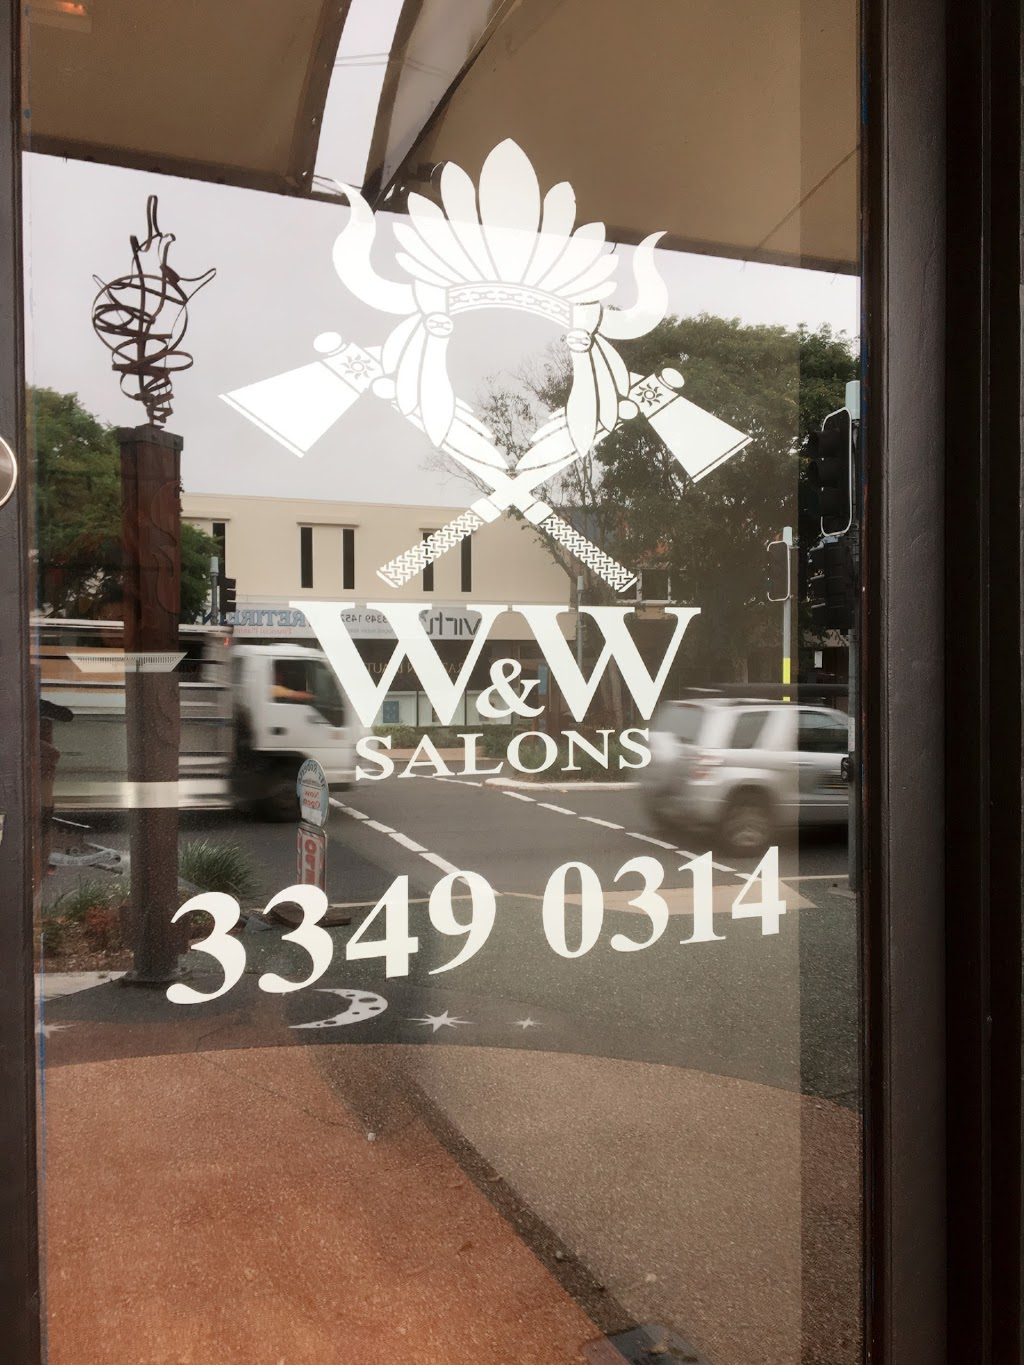 W&W Salons - Webster & Wood Hairdressers | hair care | 2/1401 Logan Rd, Mount Gravatt QLD 4122, Australia | 0733490314 OR +61 7 3349 0314